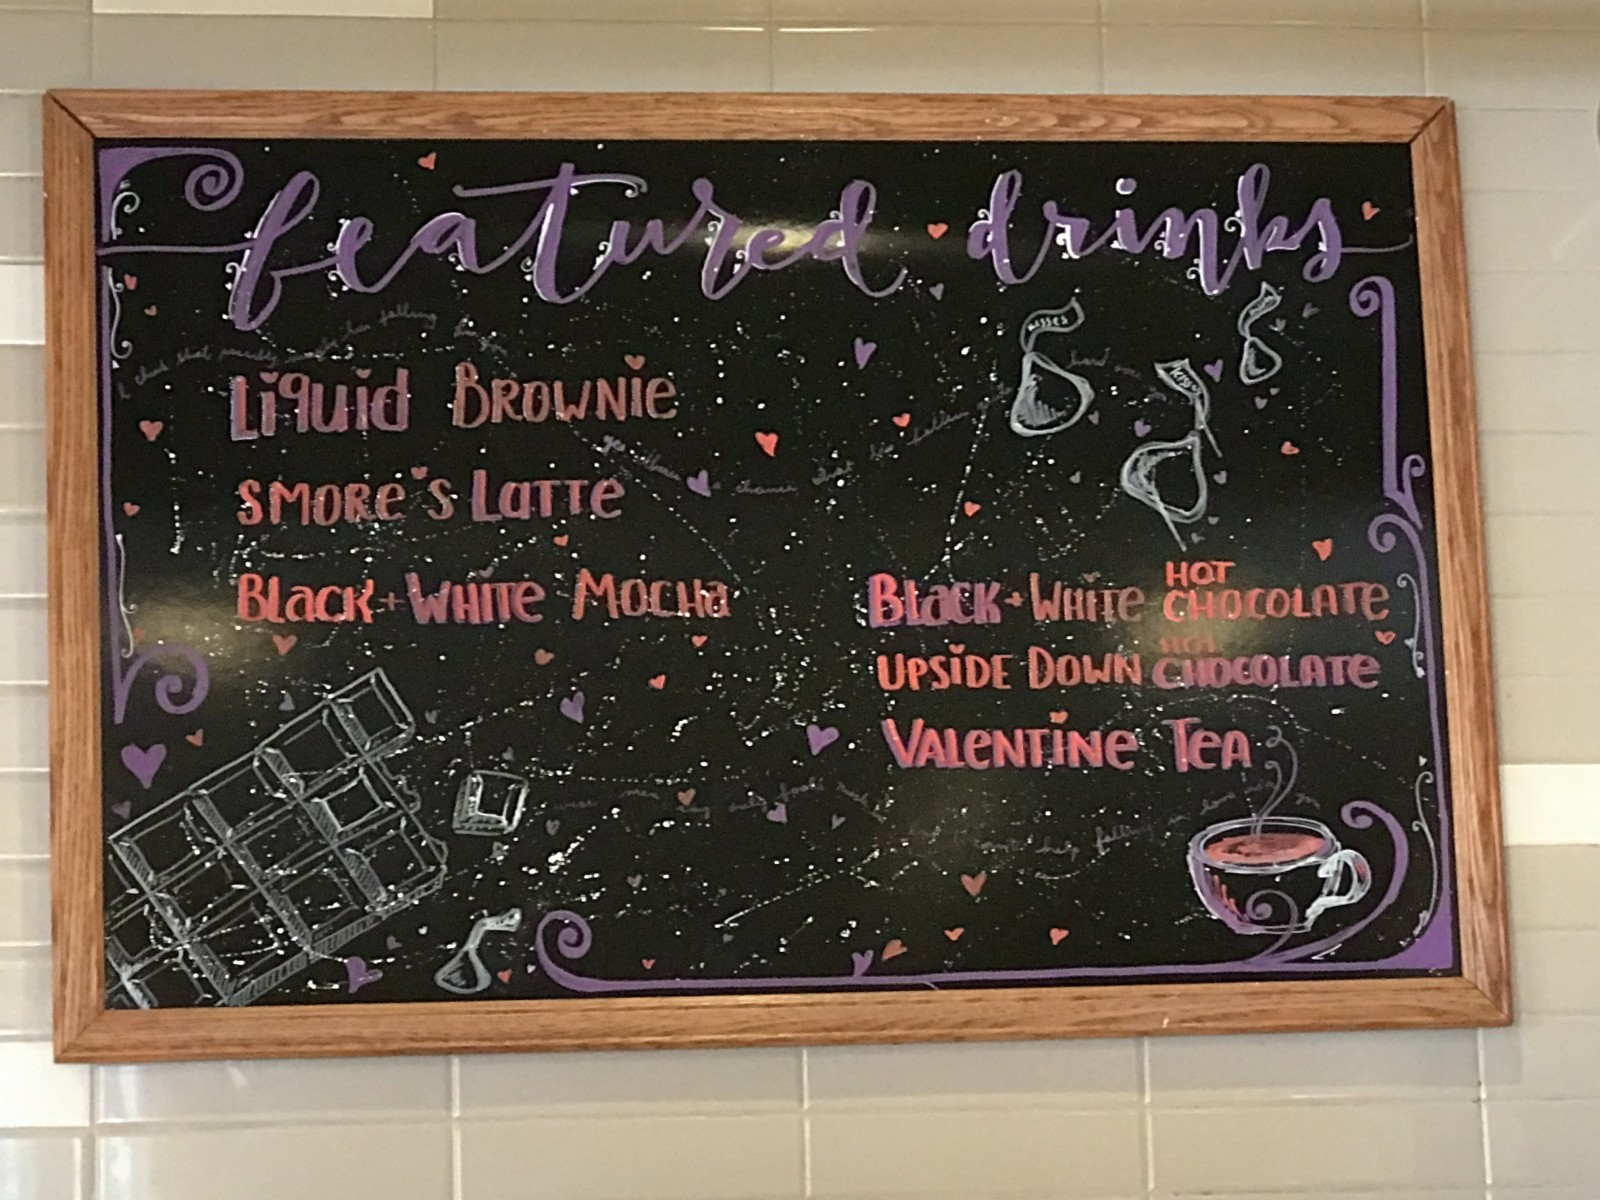 HCAR's List of February's Specialty Drinks